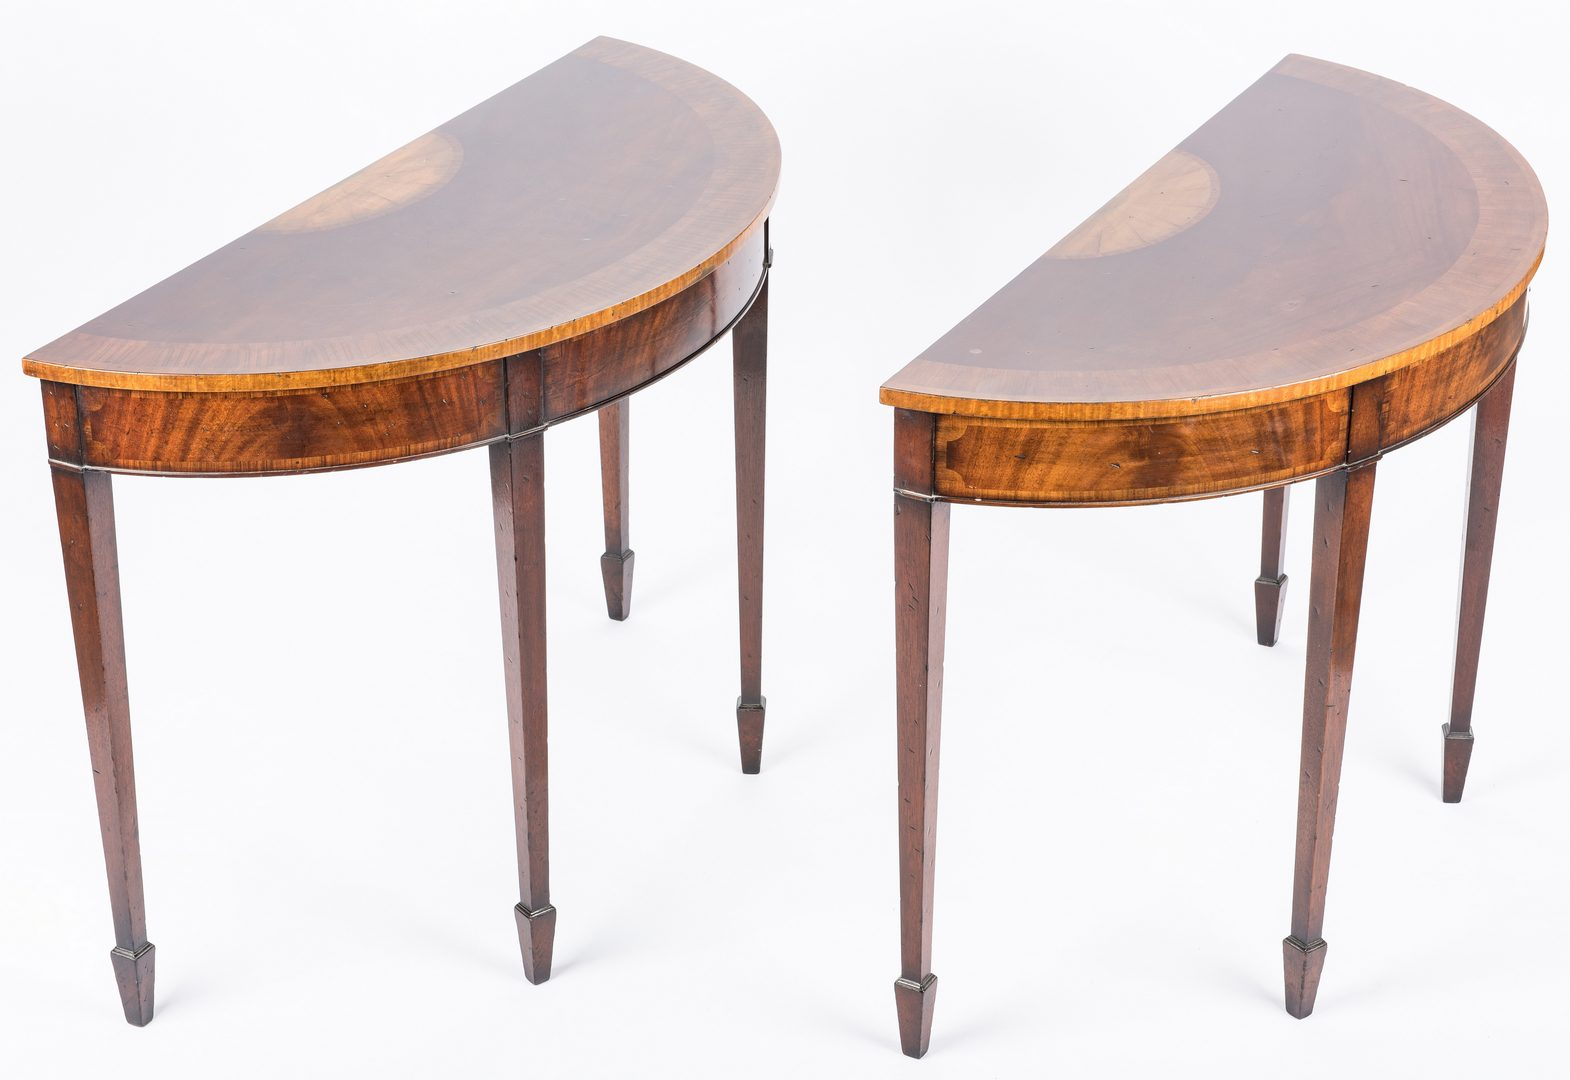 Lot 437: Pair of Georgian style Demilune Tables